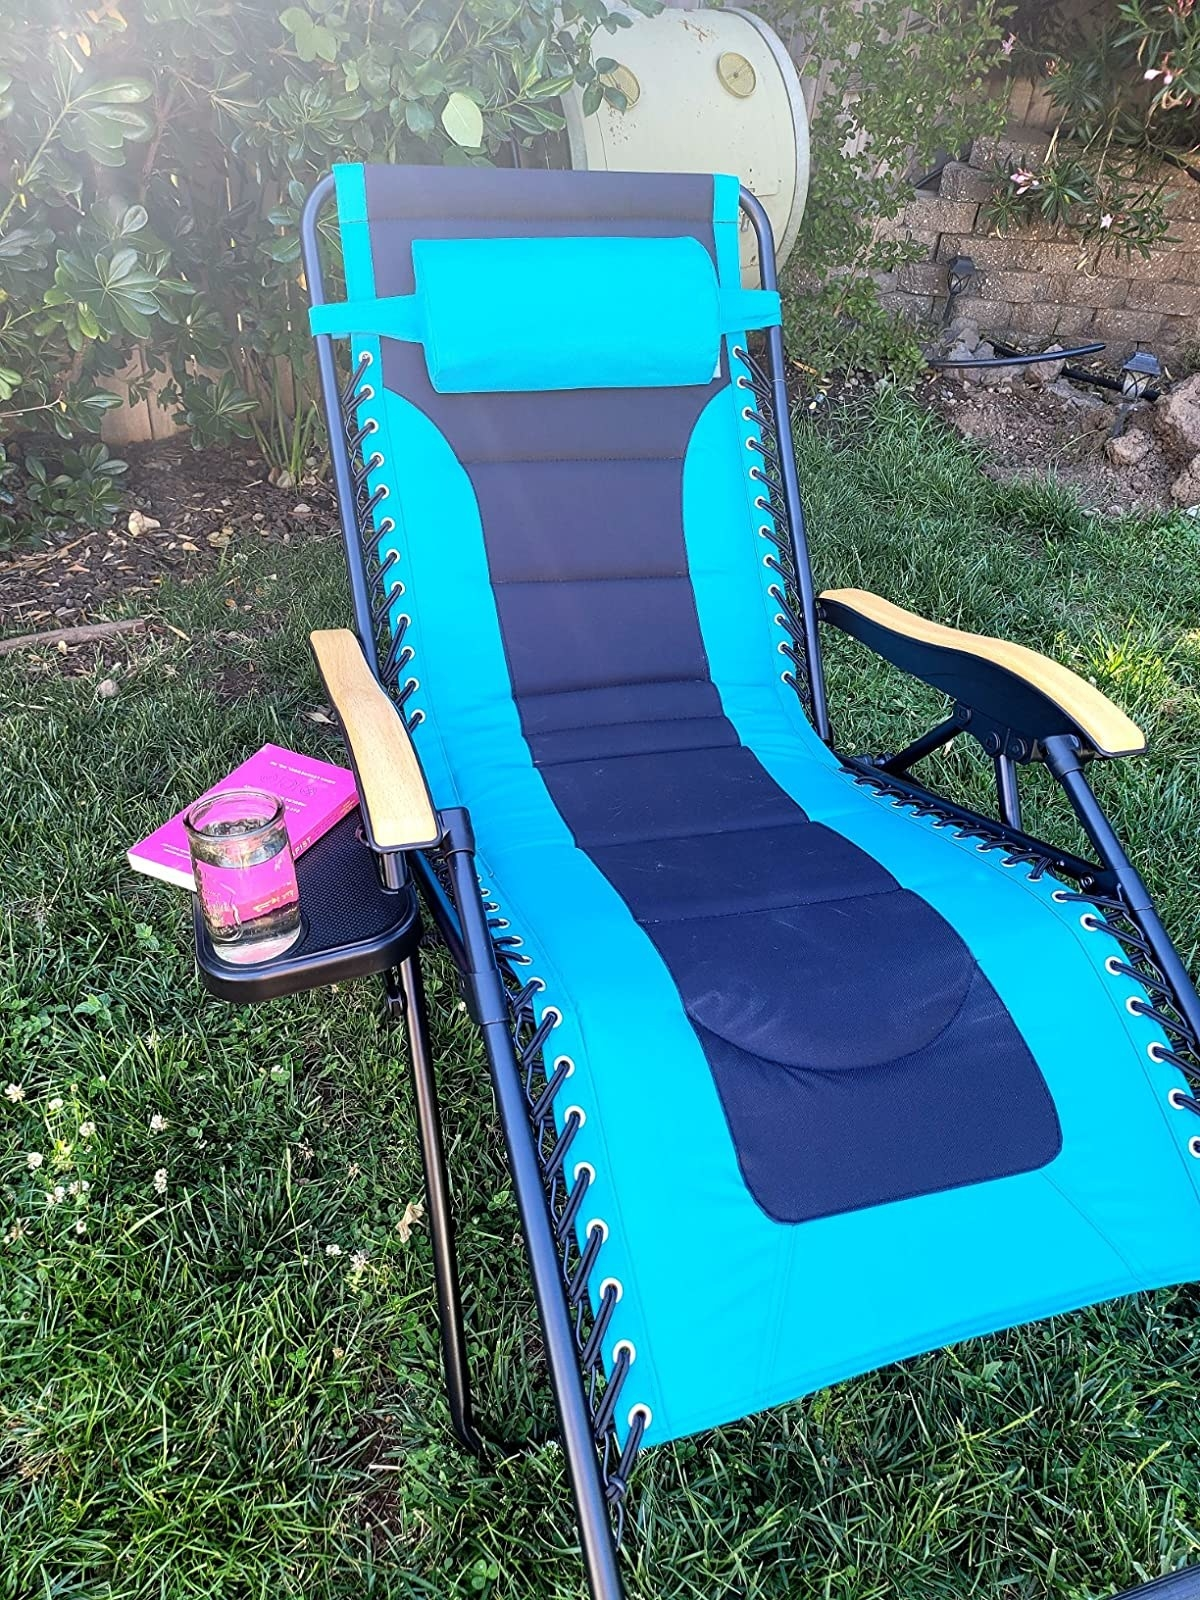 Reviewer photo of their blue chair